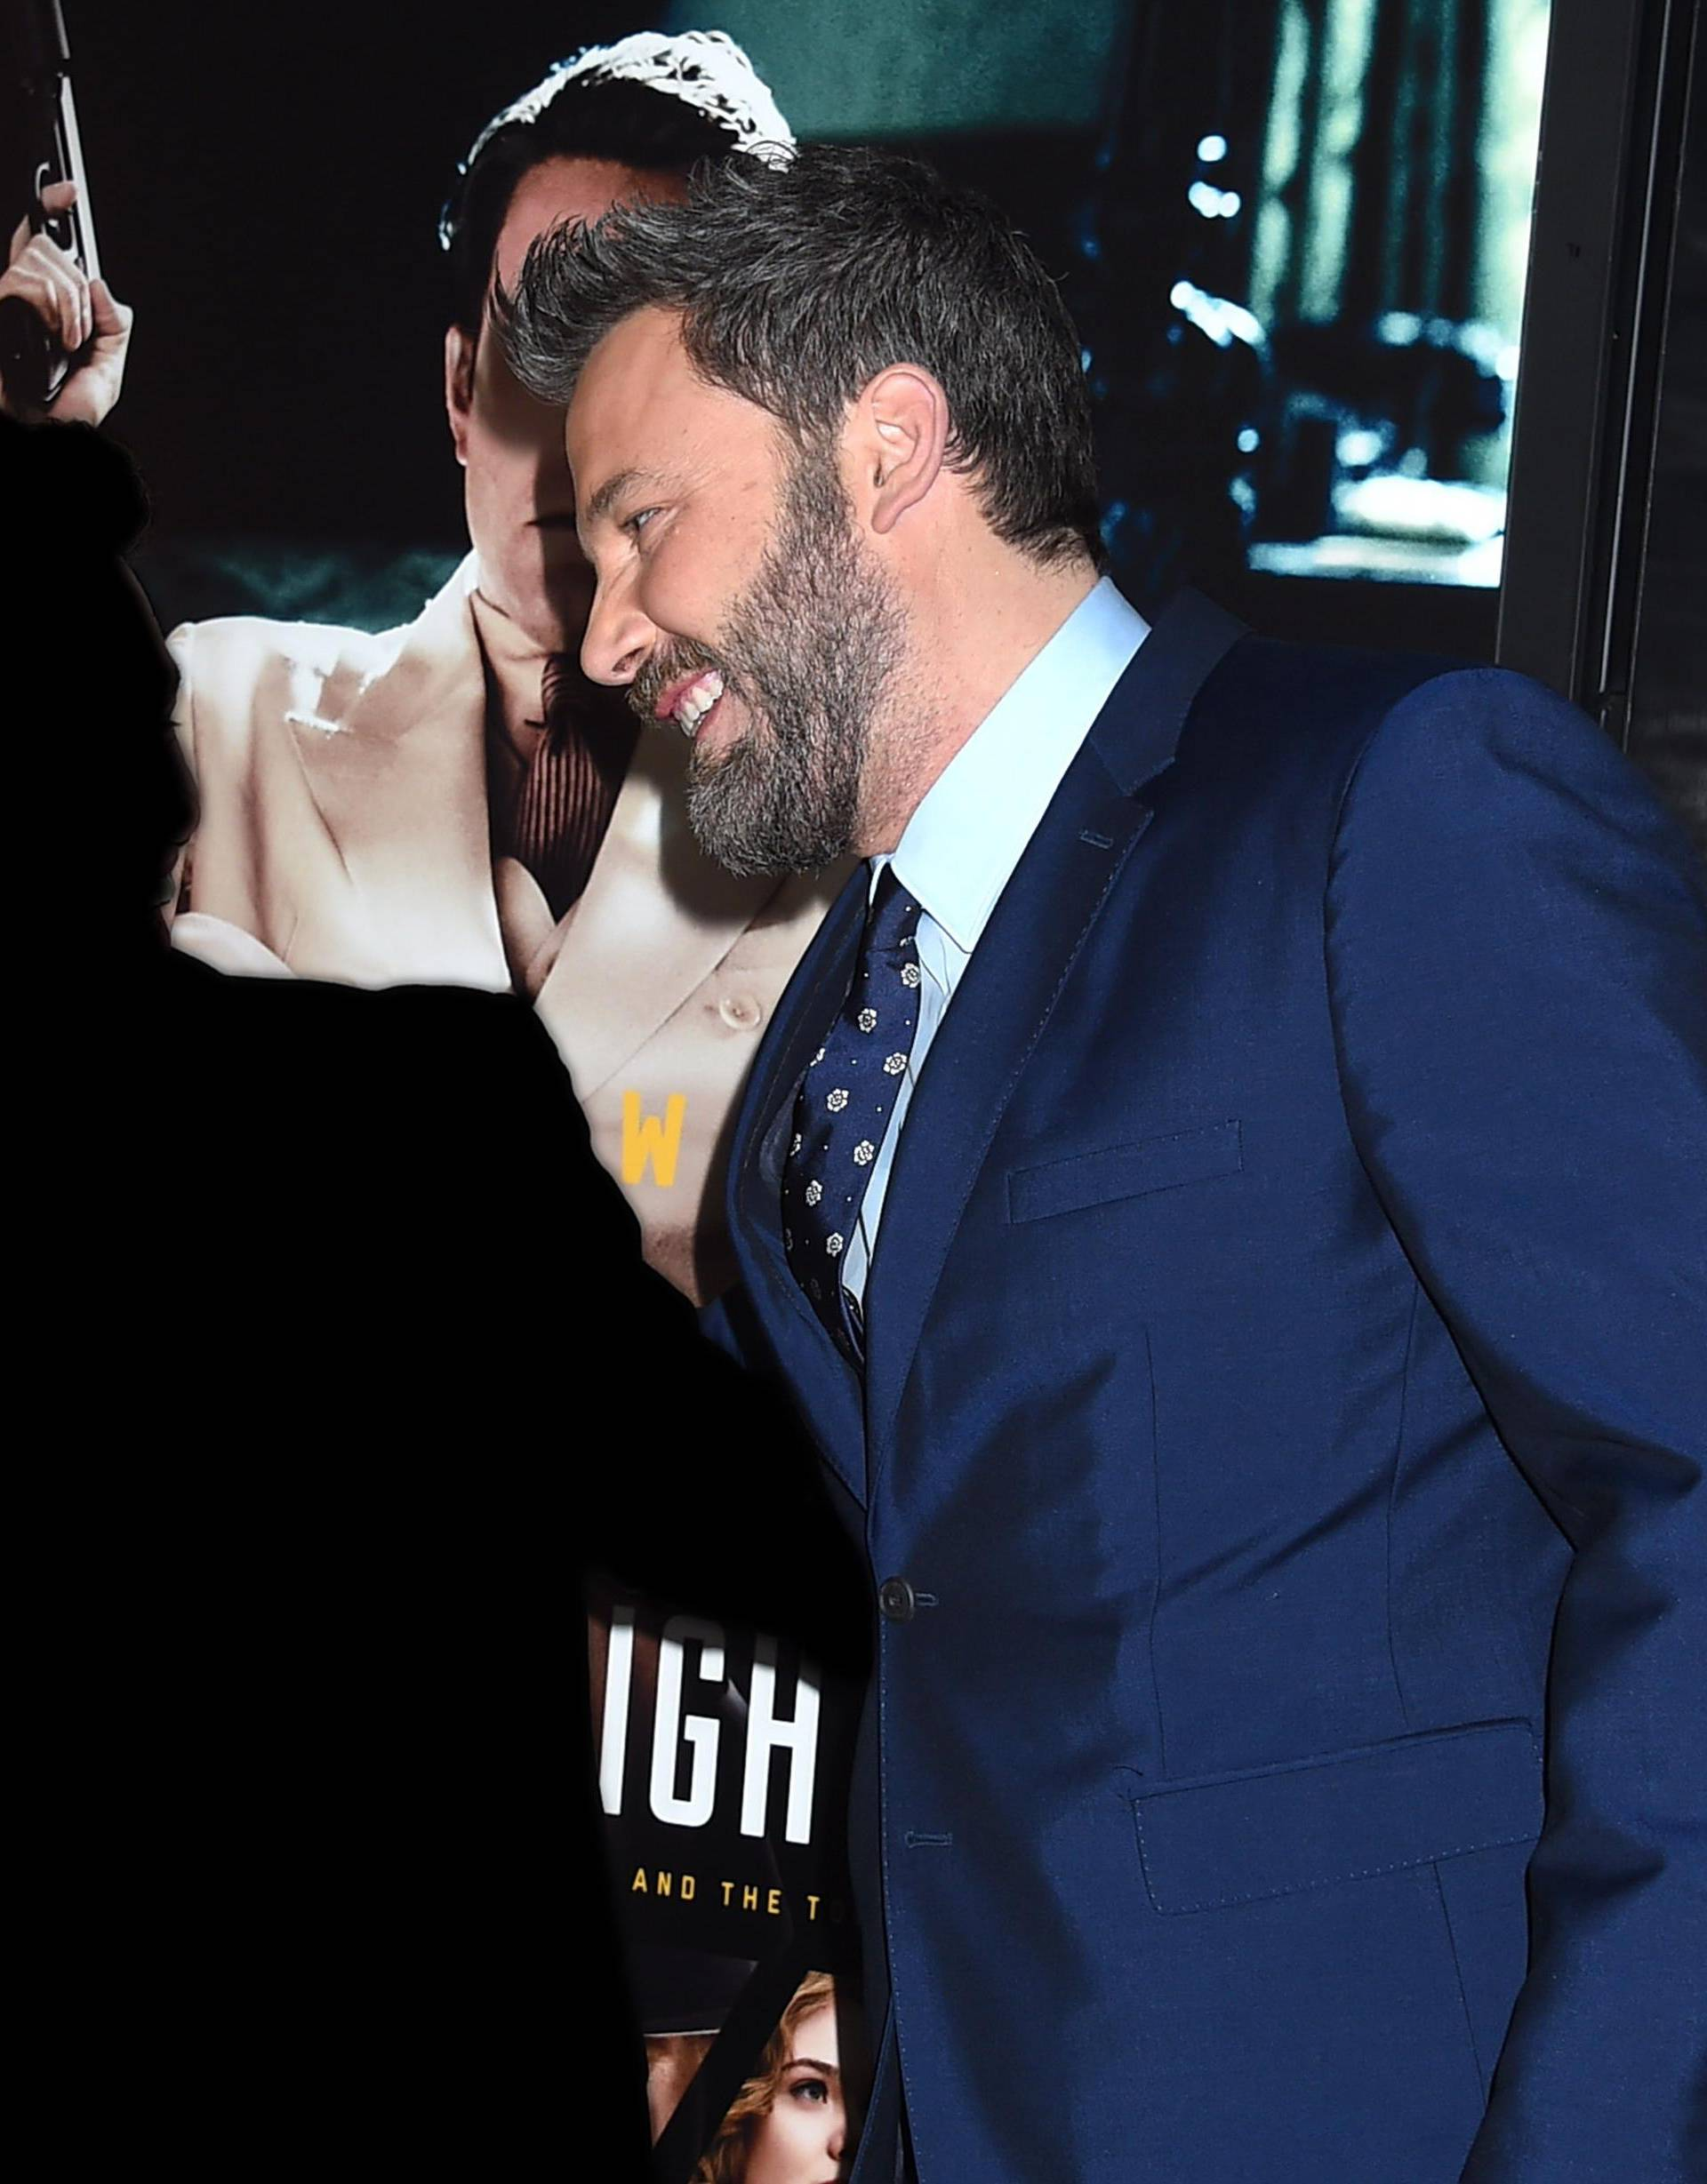 Live By Night World Premiere - Los Angeles